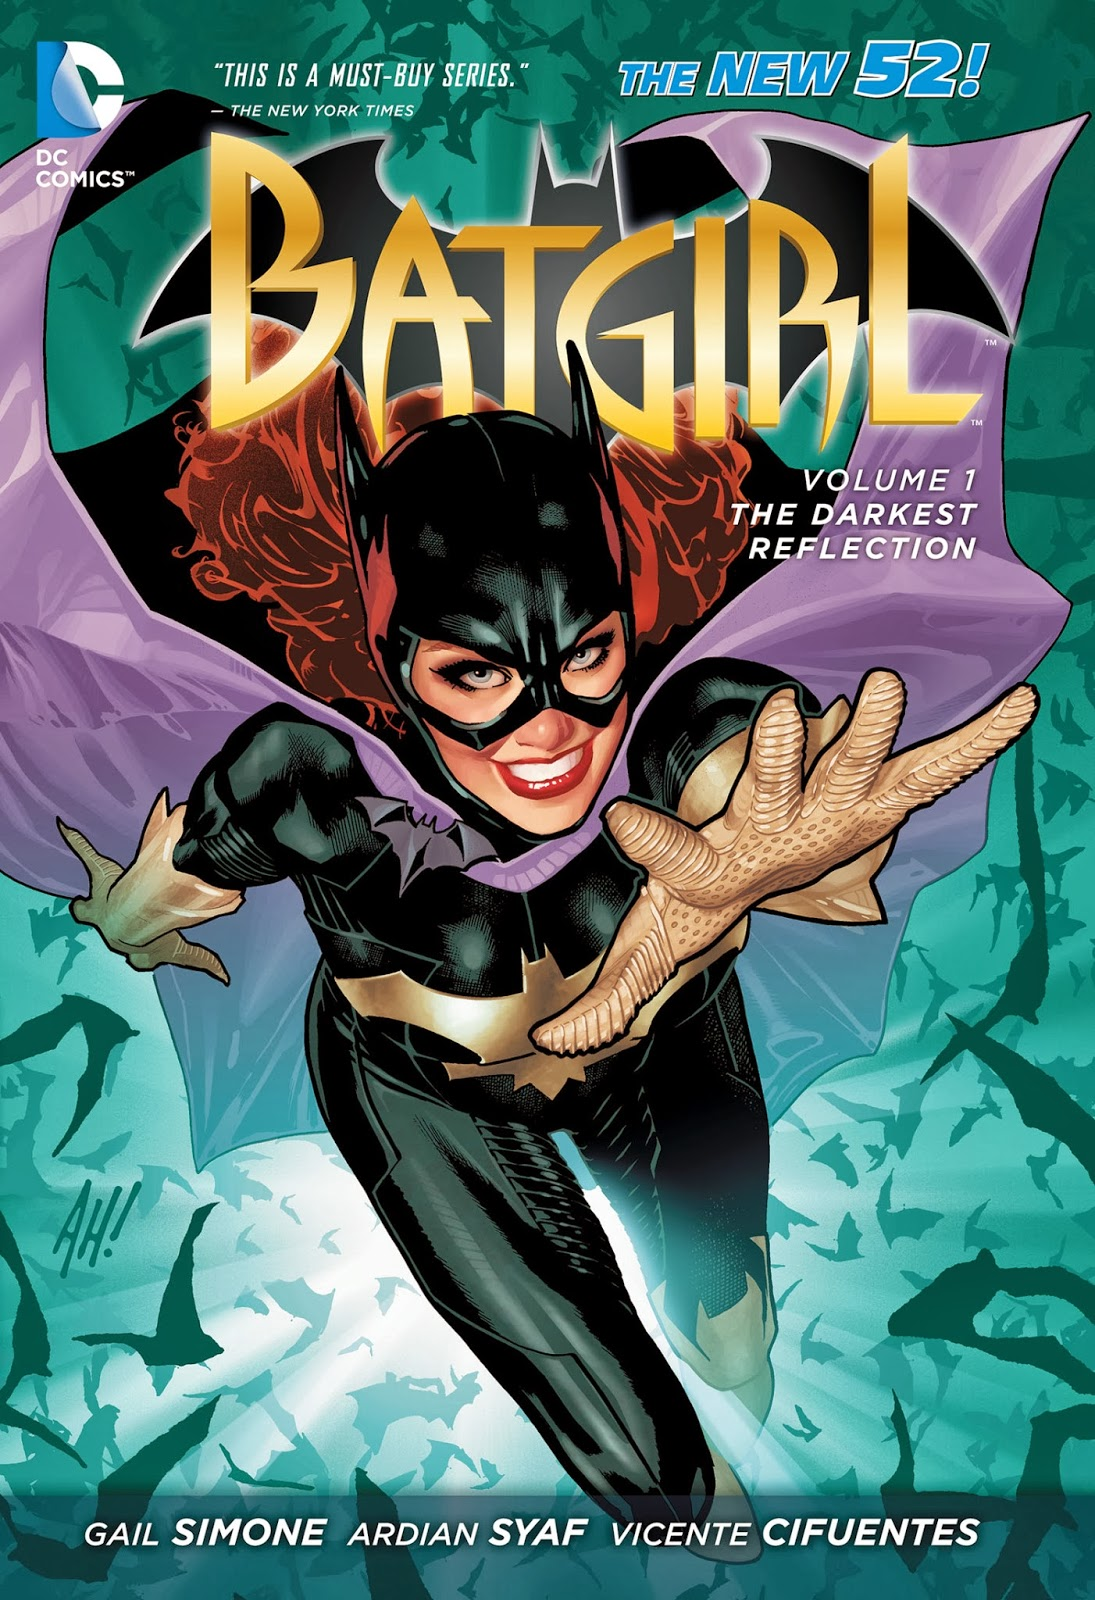 Batgirl Volume 1, by Gail Simone (Birds of Prey, Wonder Woman), Ardian Syaf (Blackest Night, Brightest Day, Justice League, Green Lantern) and Vicente Cifuentes (Fantastic Four, Hulk)